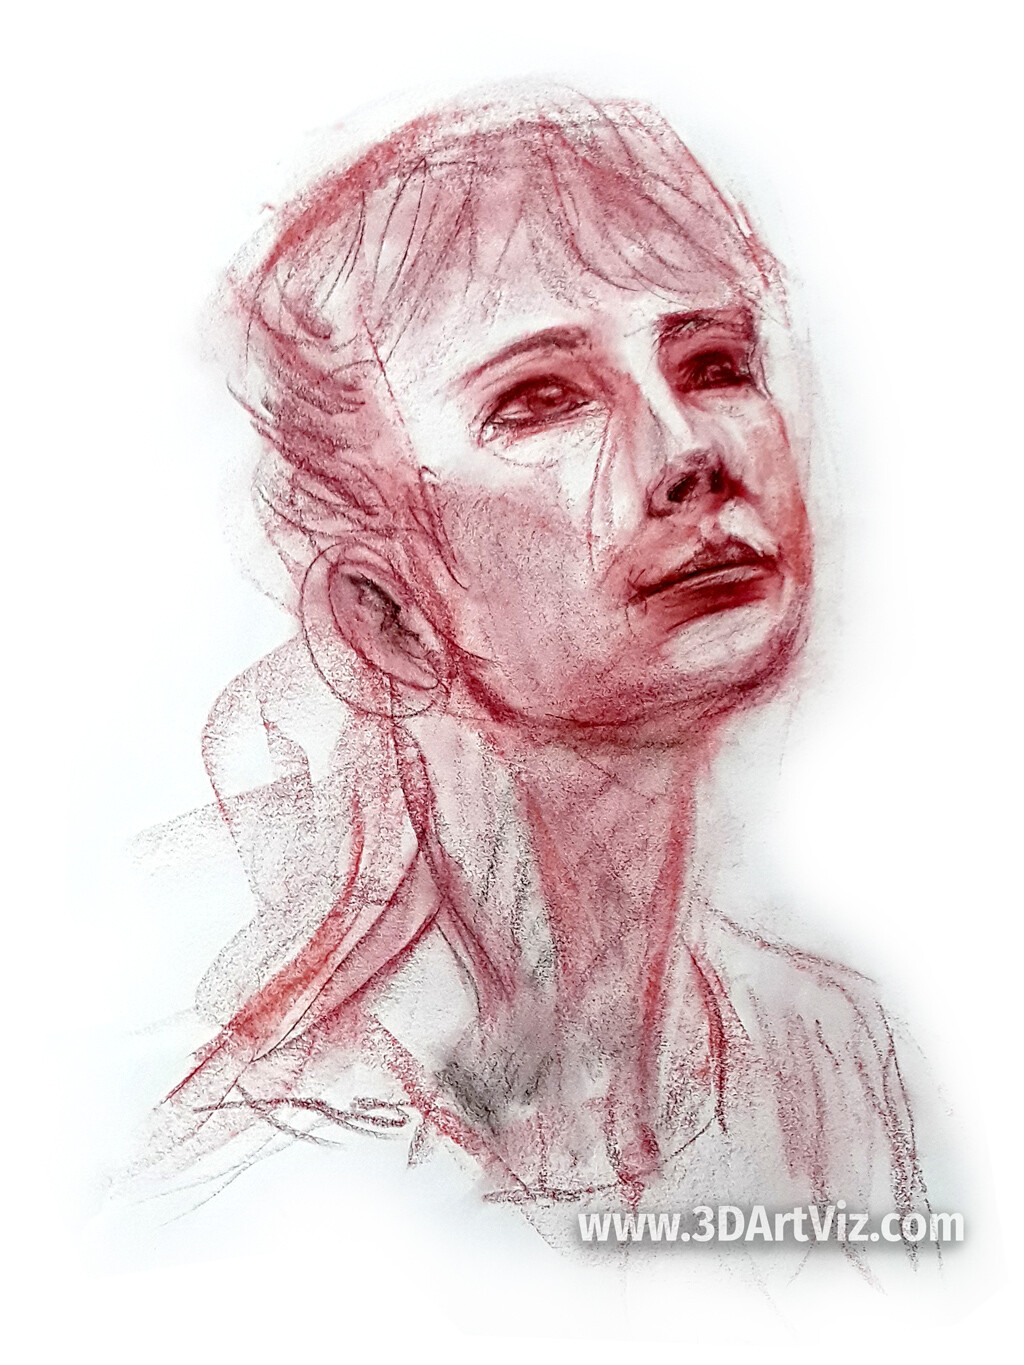 Draw chalk techniques applied to a live portrait study. 20 min. Berlin, 2019.